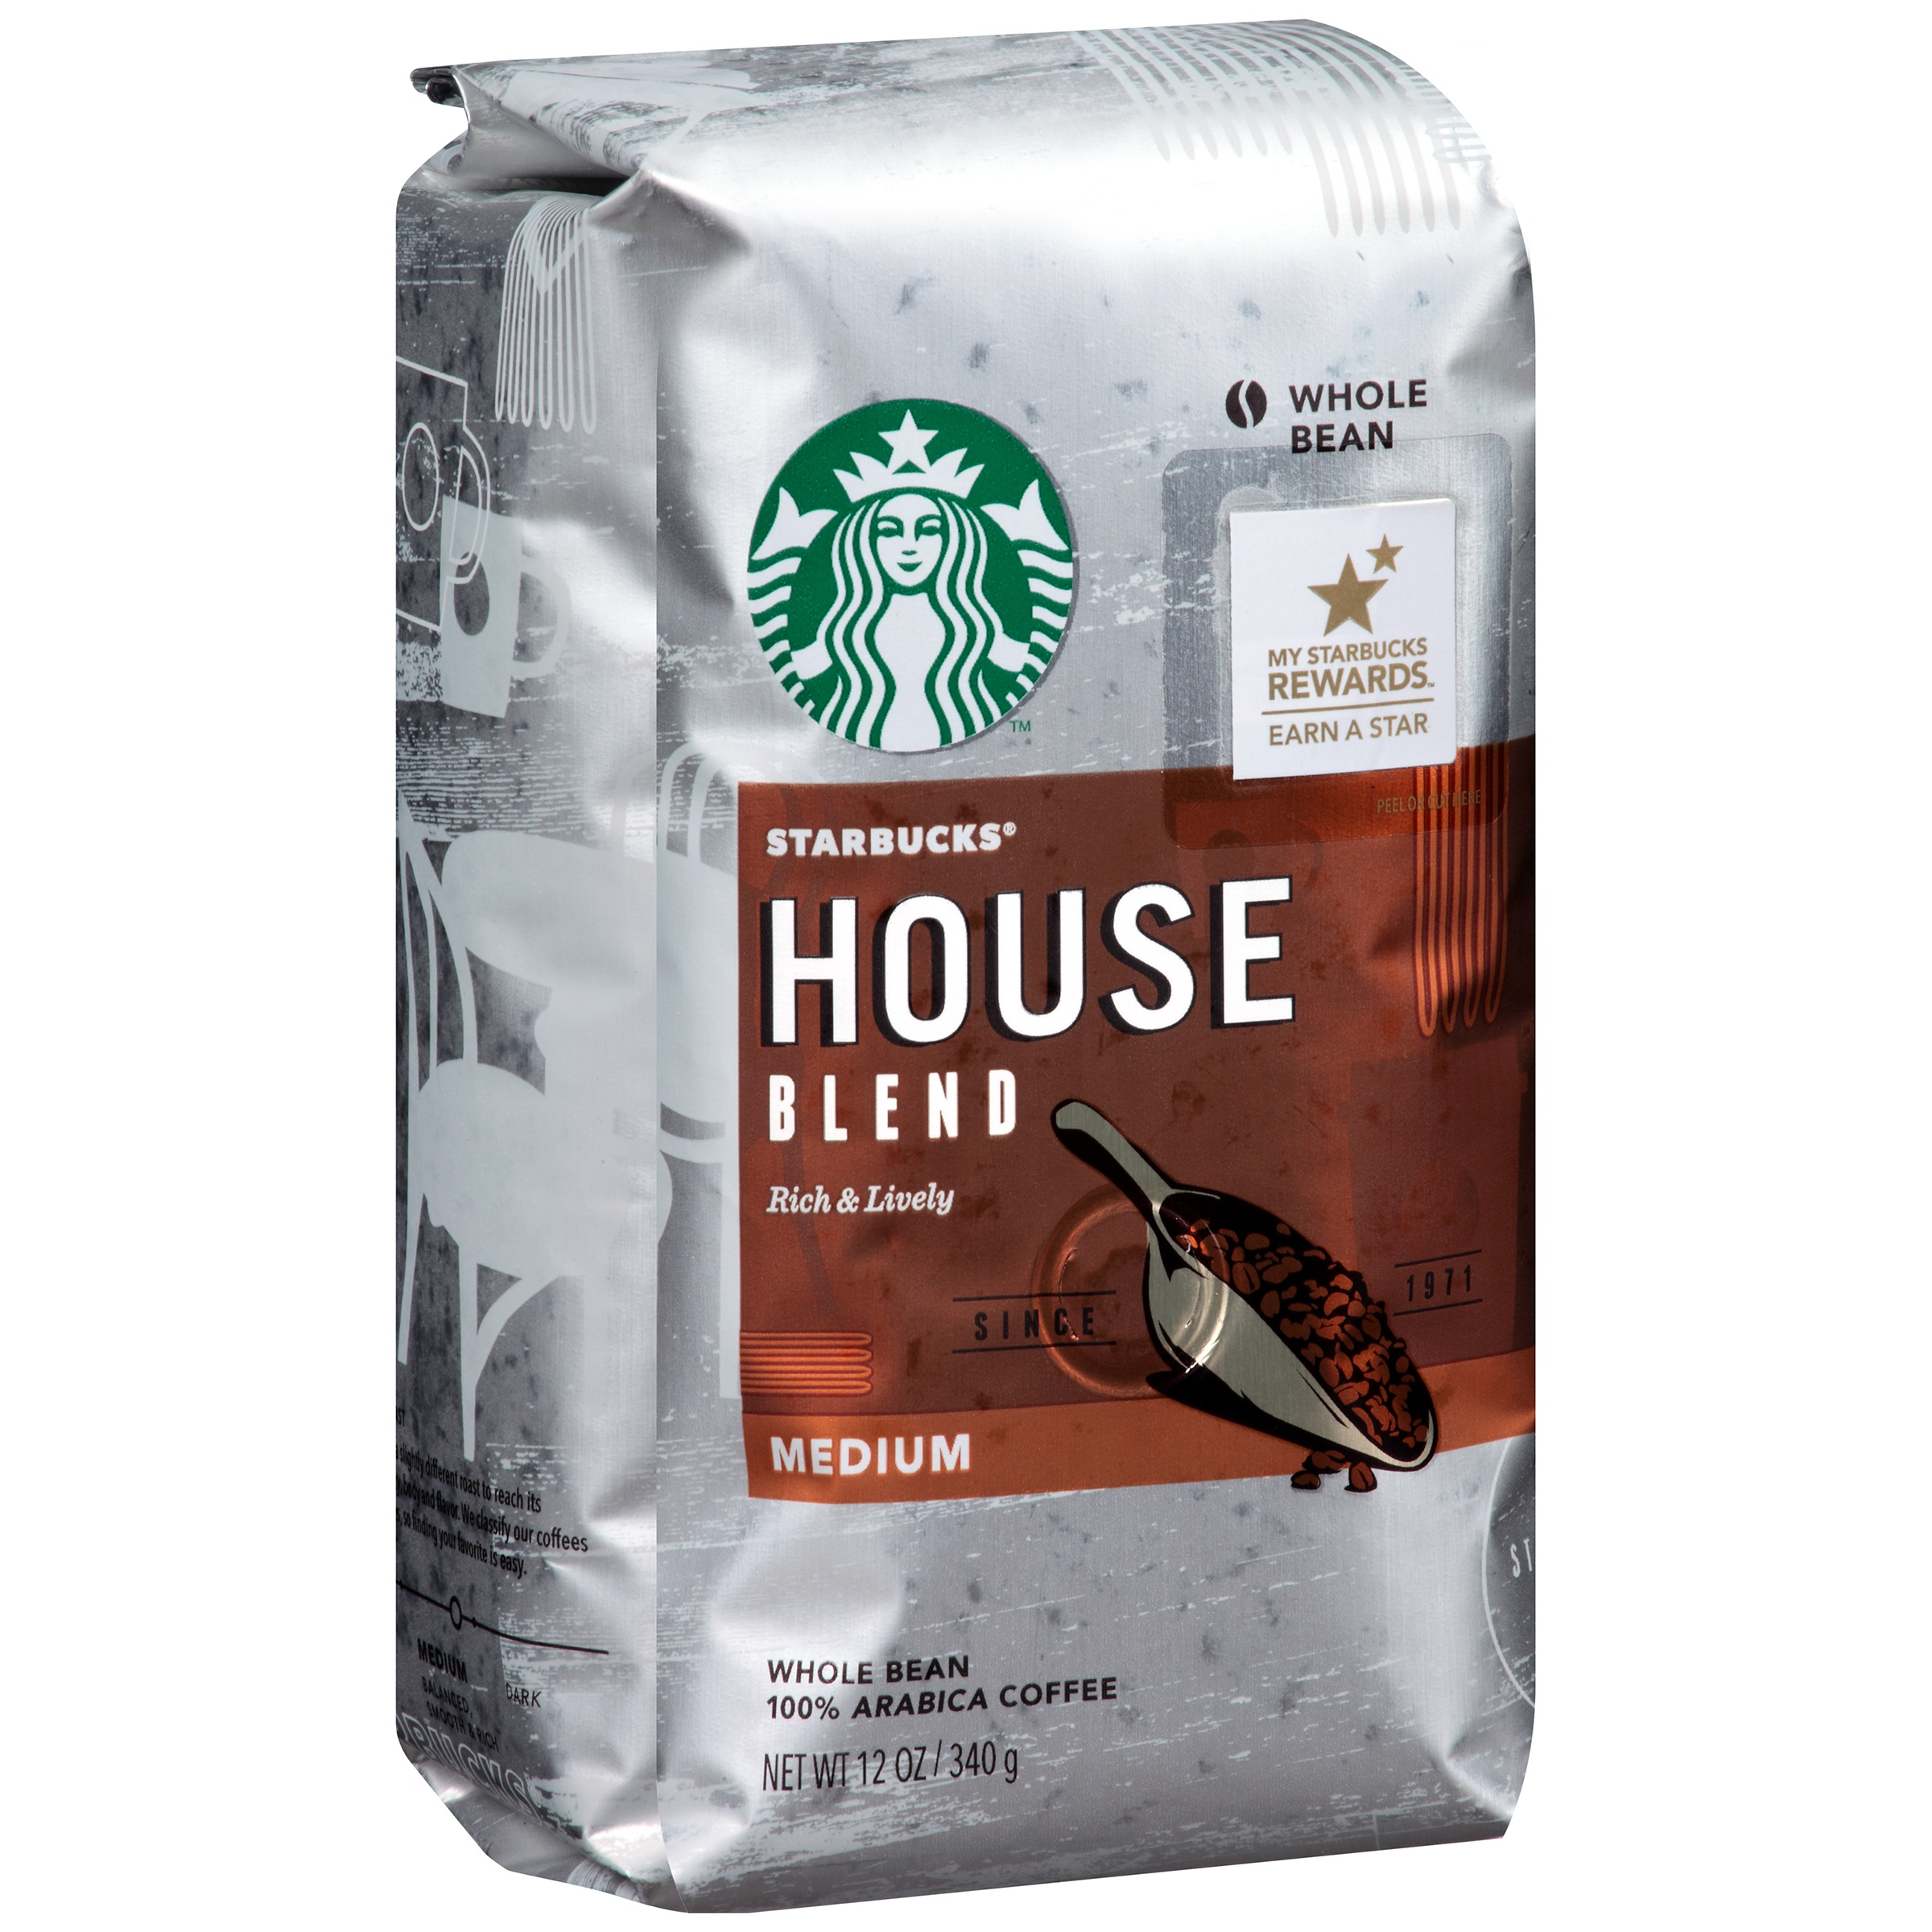 Starbucks House Blend Medium Whole Bean Coffee, 12.0 OZ